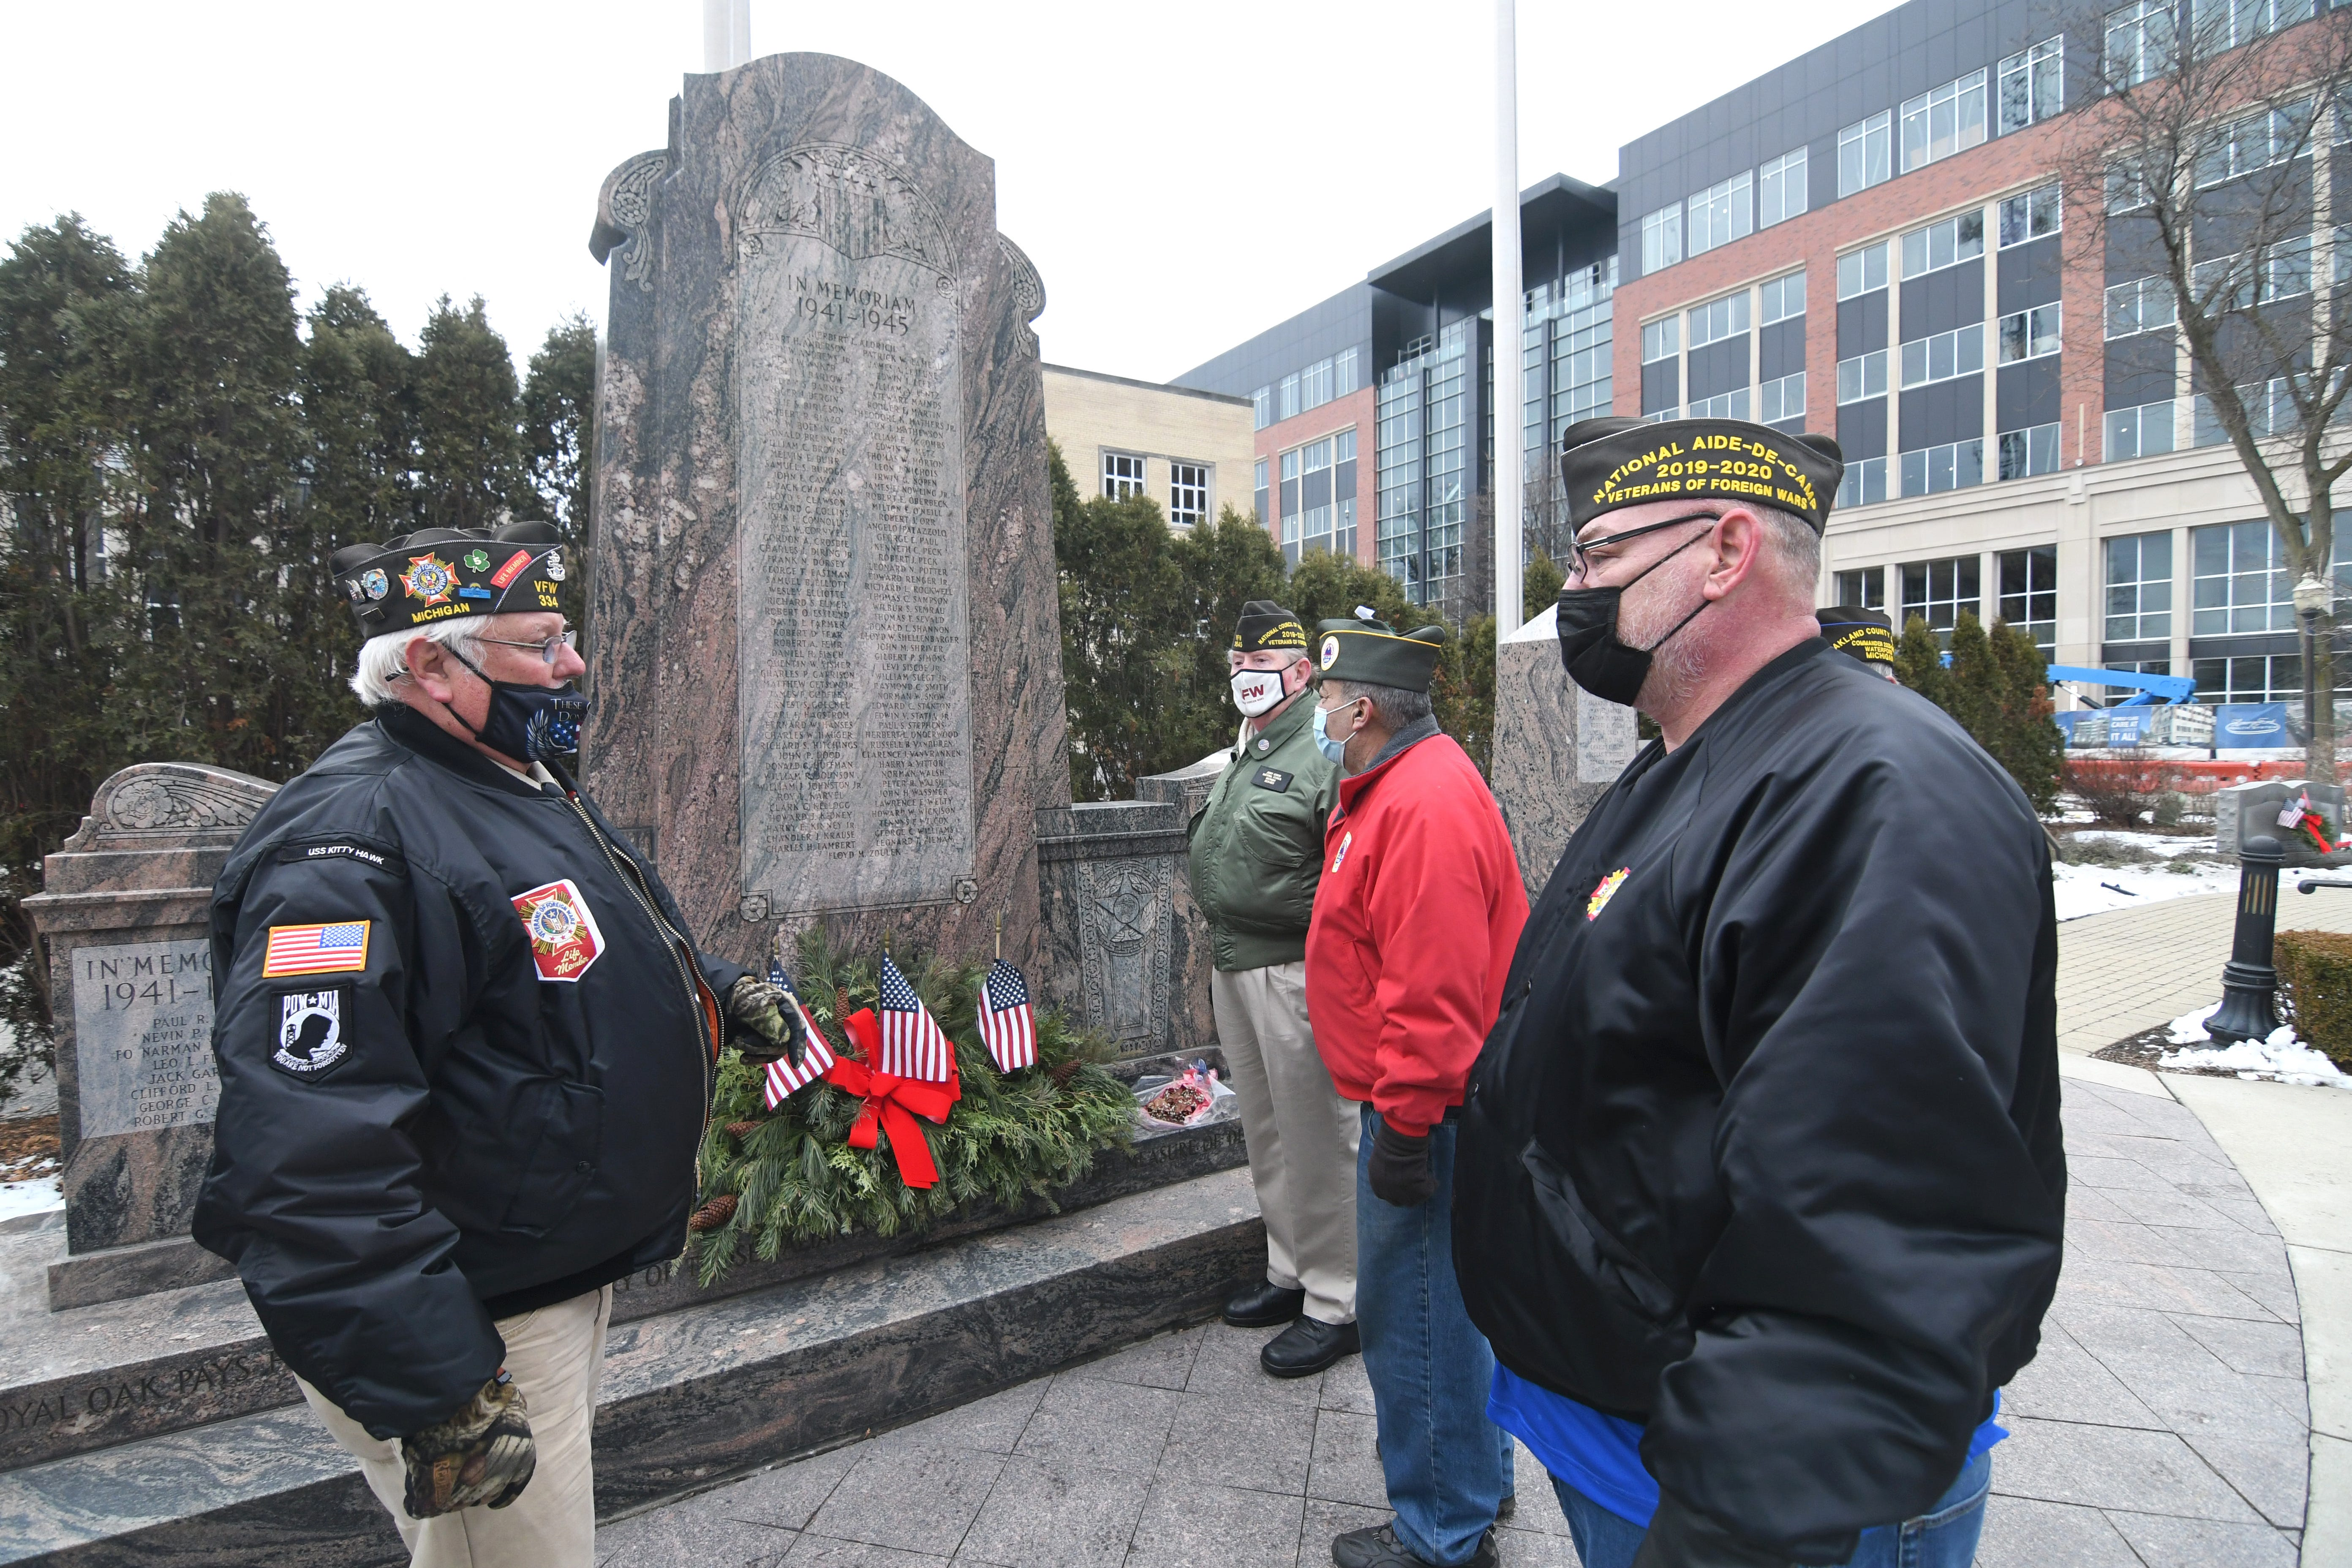 Royal Oak commission votes to put issue of Veterans Memorial location on ballot